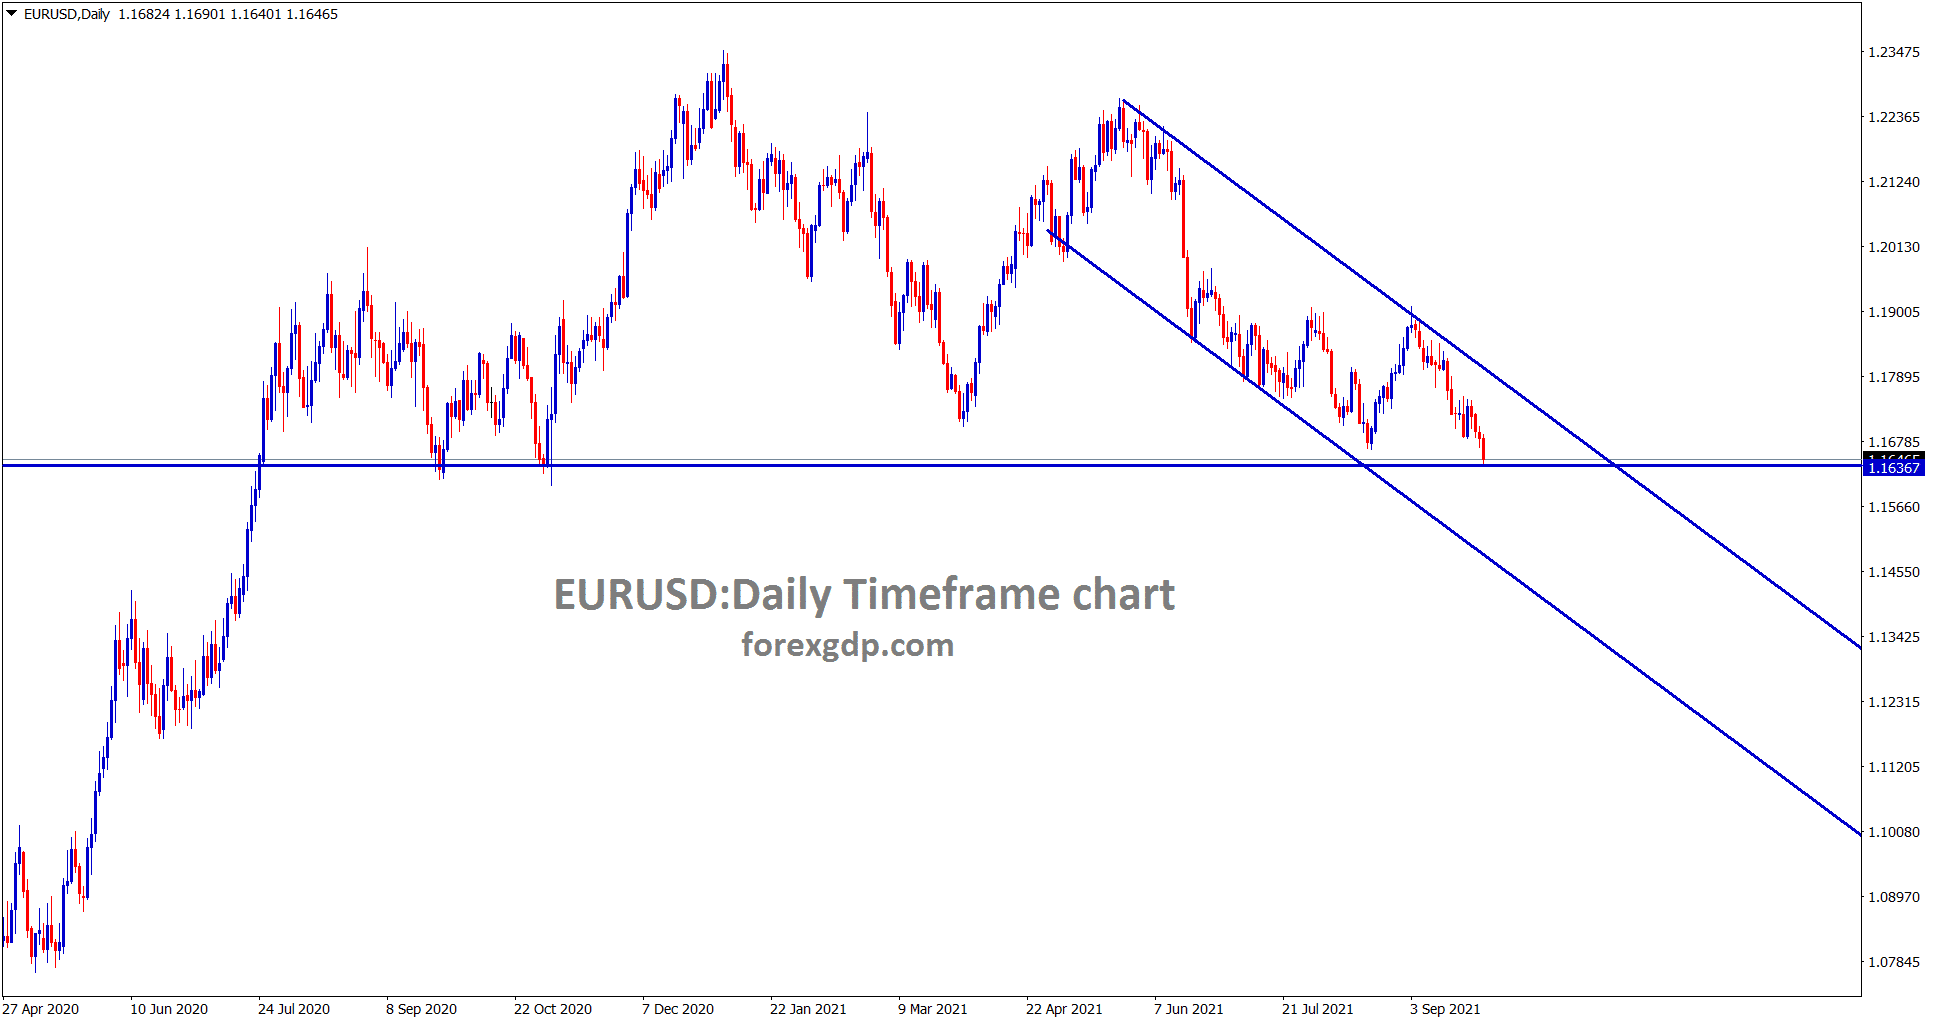 EURUSD is standing now at the support area